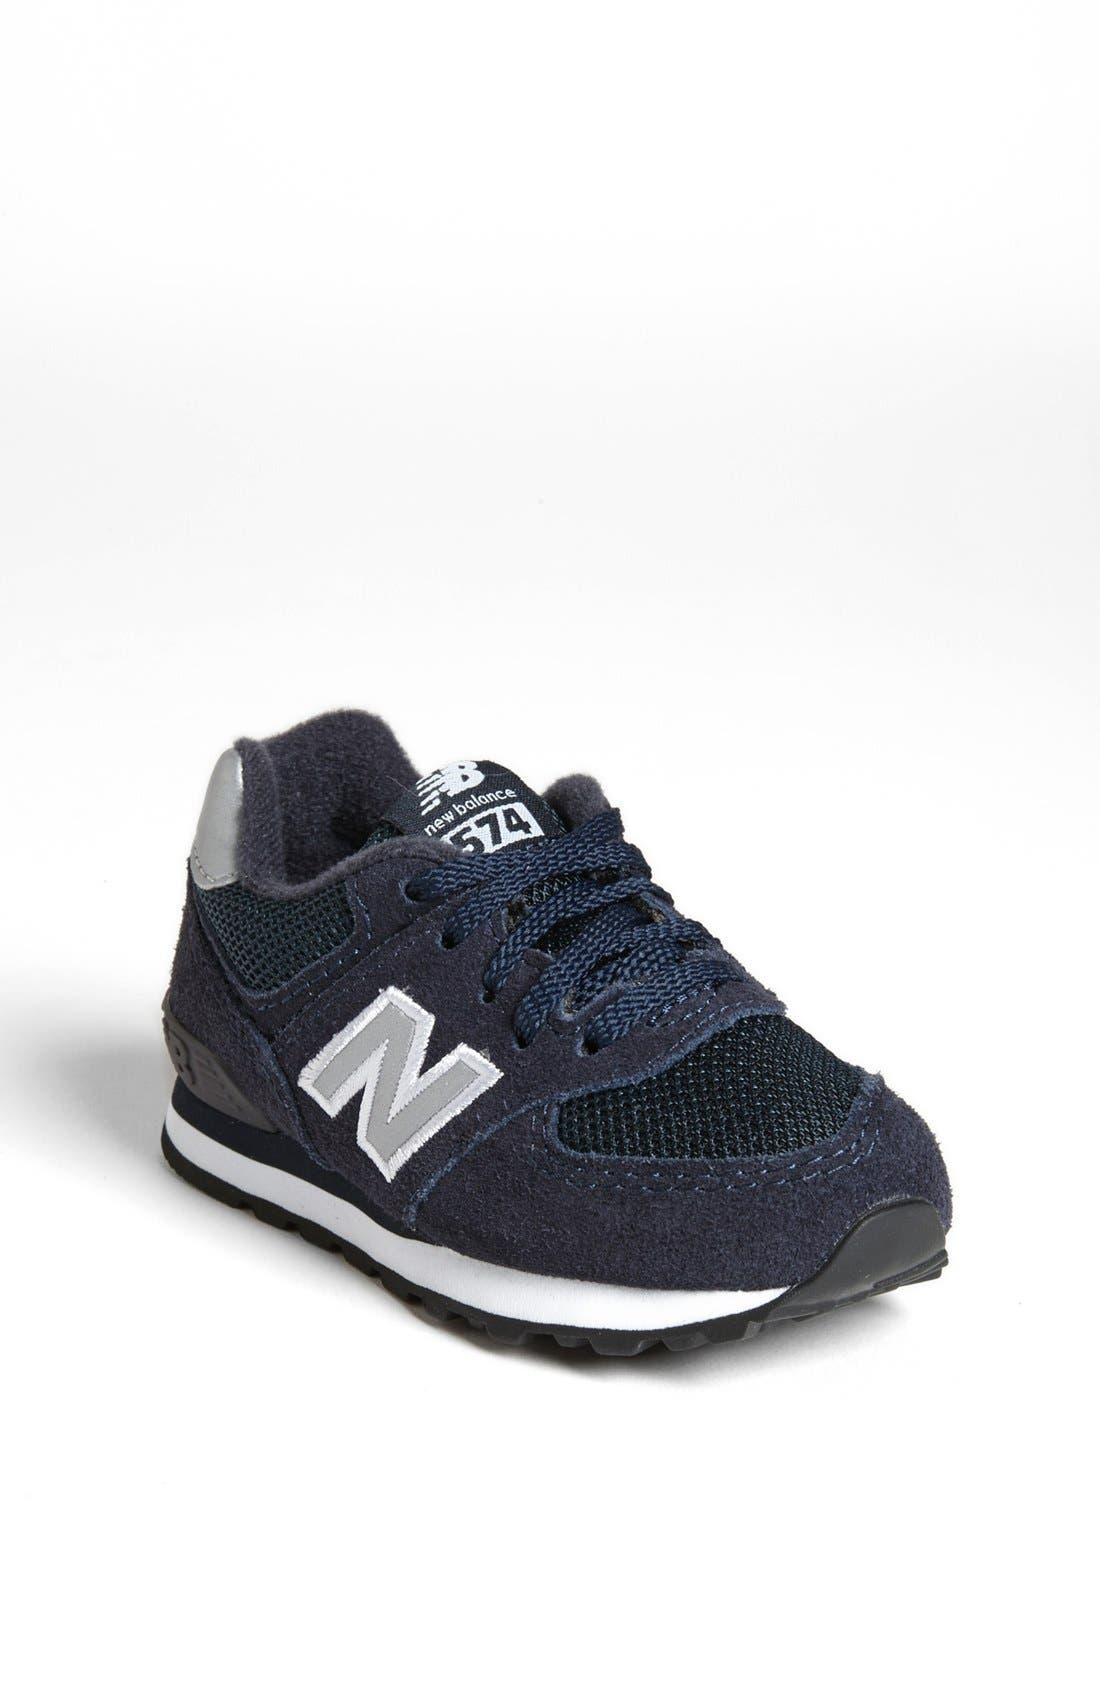 Alternate Image 1 Selected - New Balance '574' Sneaker (Baby, Walker & Toddler)